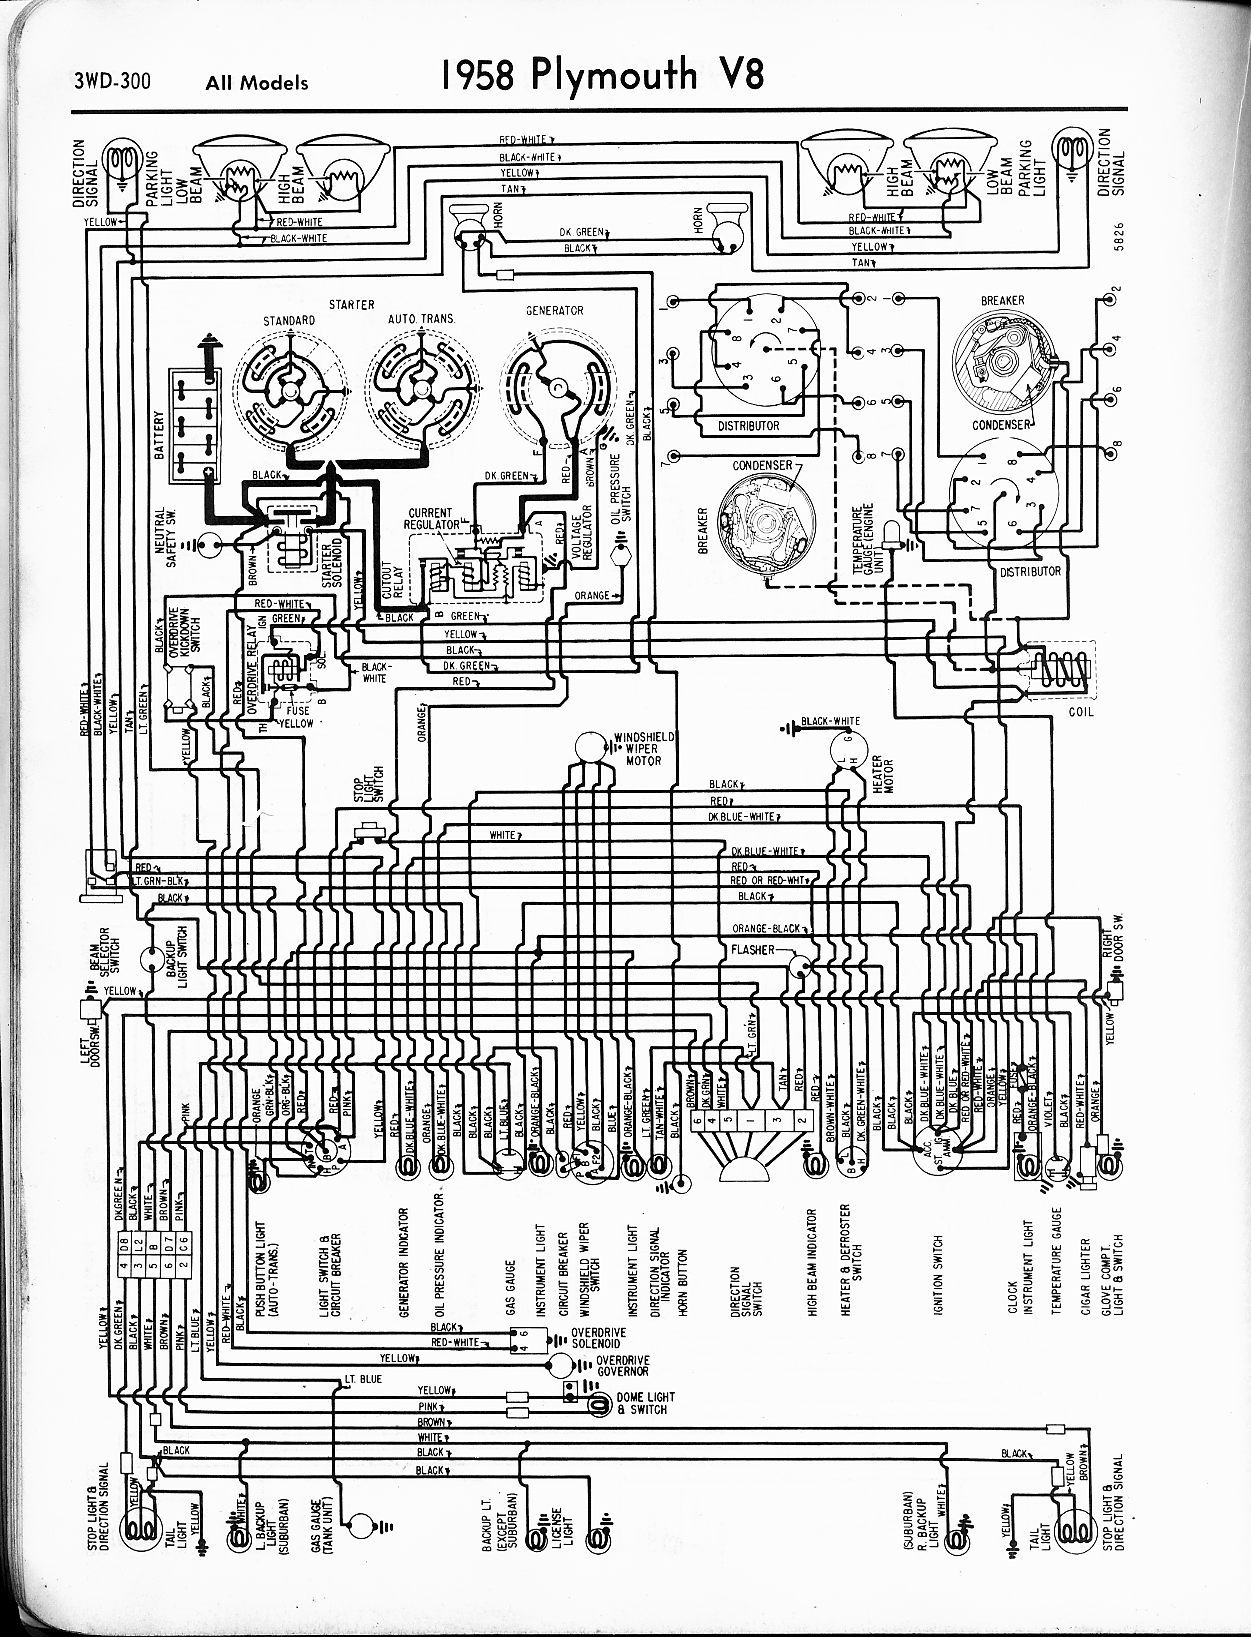 1965 Plymouth Belvedere Wiring Diagram Auto Electrical Oldsmobile V8 Engine 1958